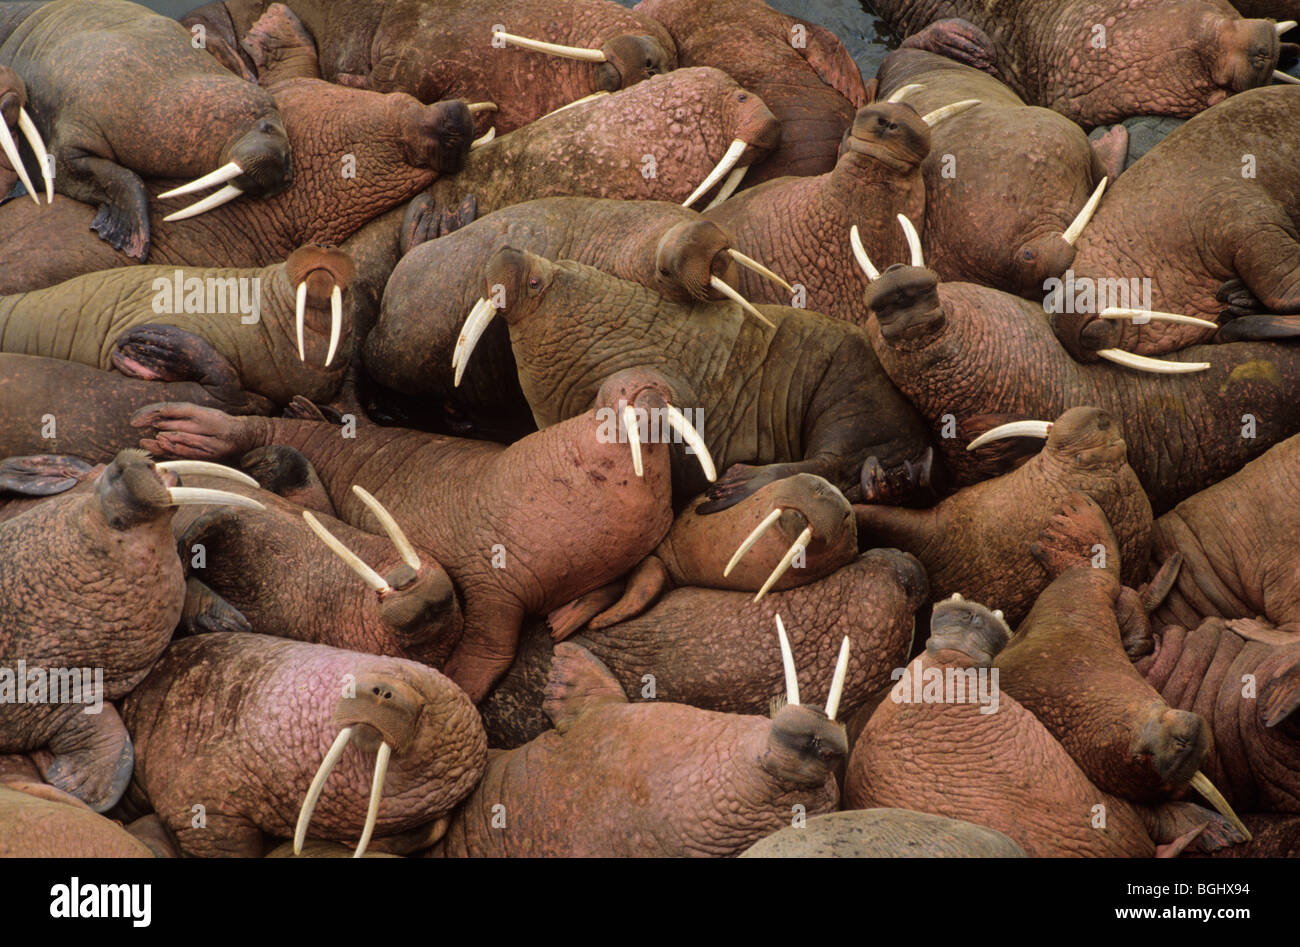 Male walruses basking on Round Island, Walrus Islands State Game Sanctuary, Alaska, USA - Stock Image